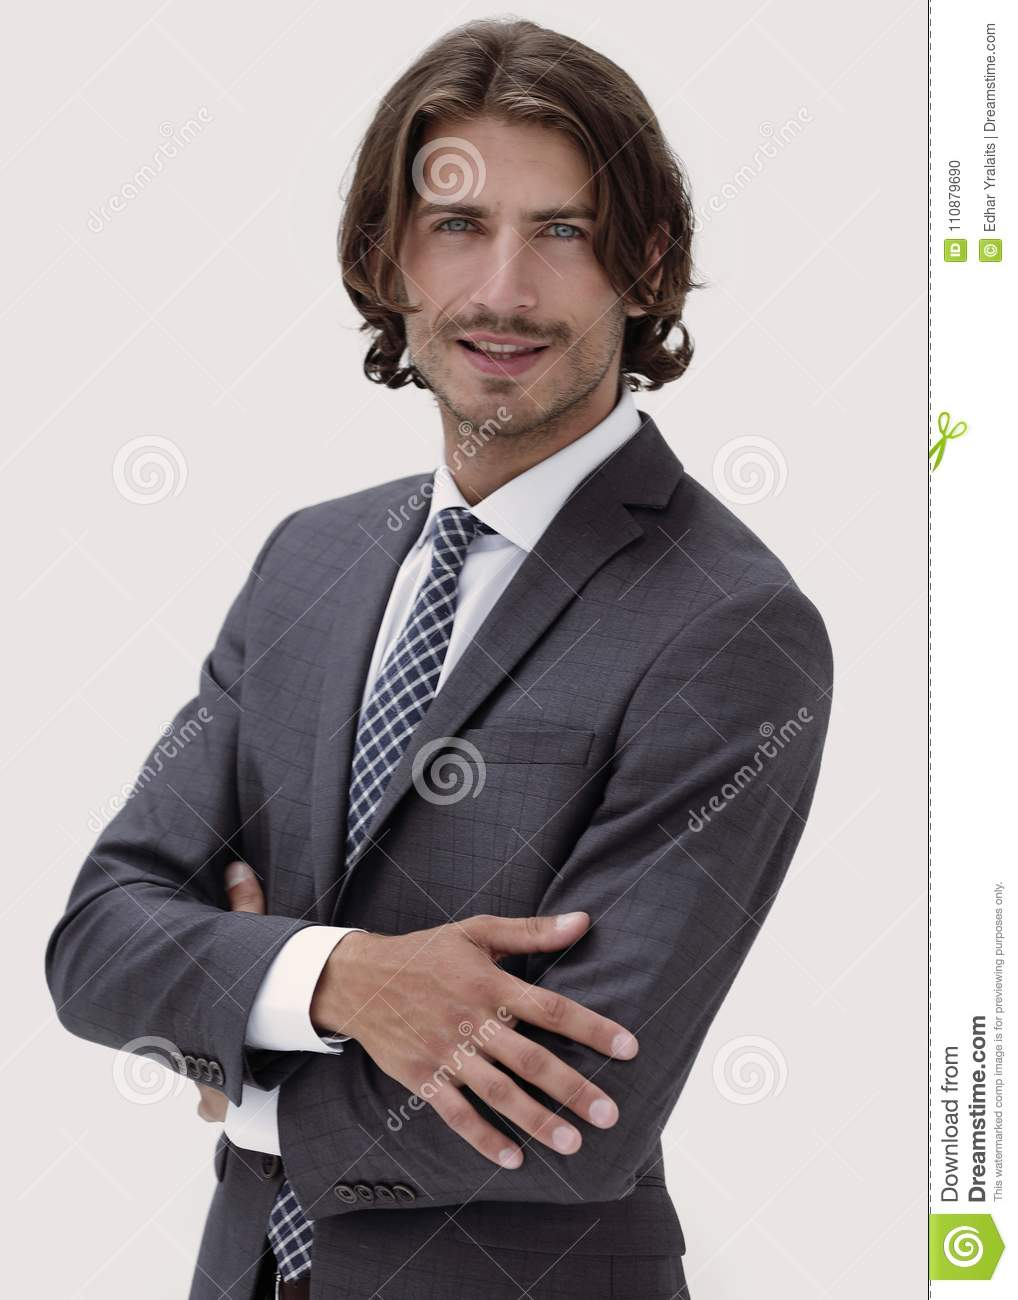 Business Man With Crossed Arms Smiling White Background